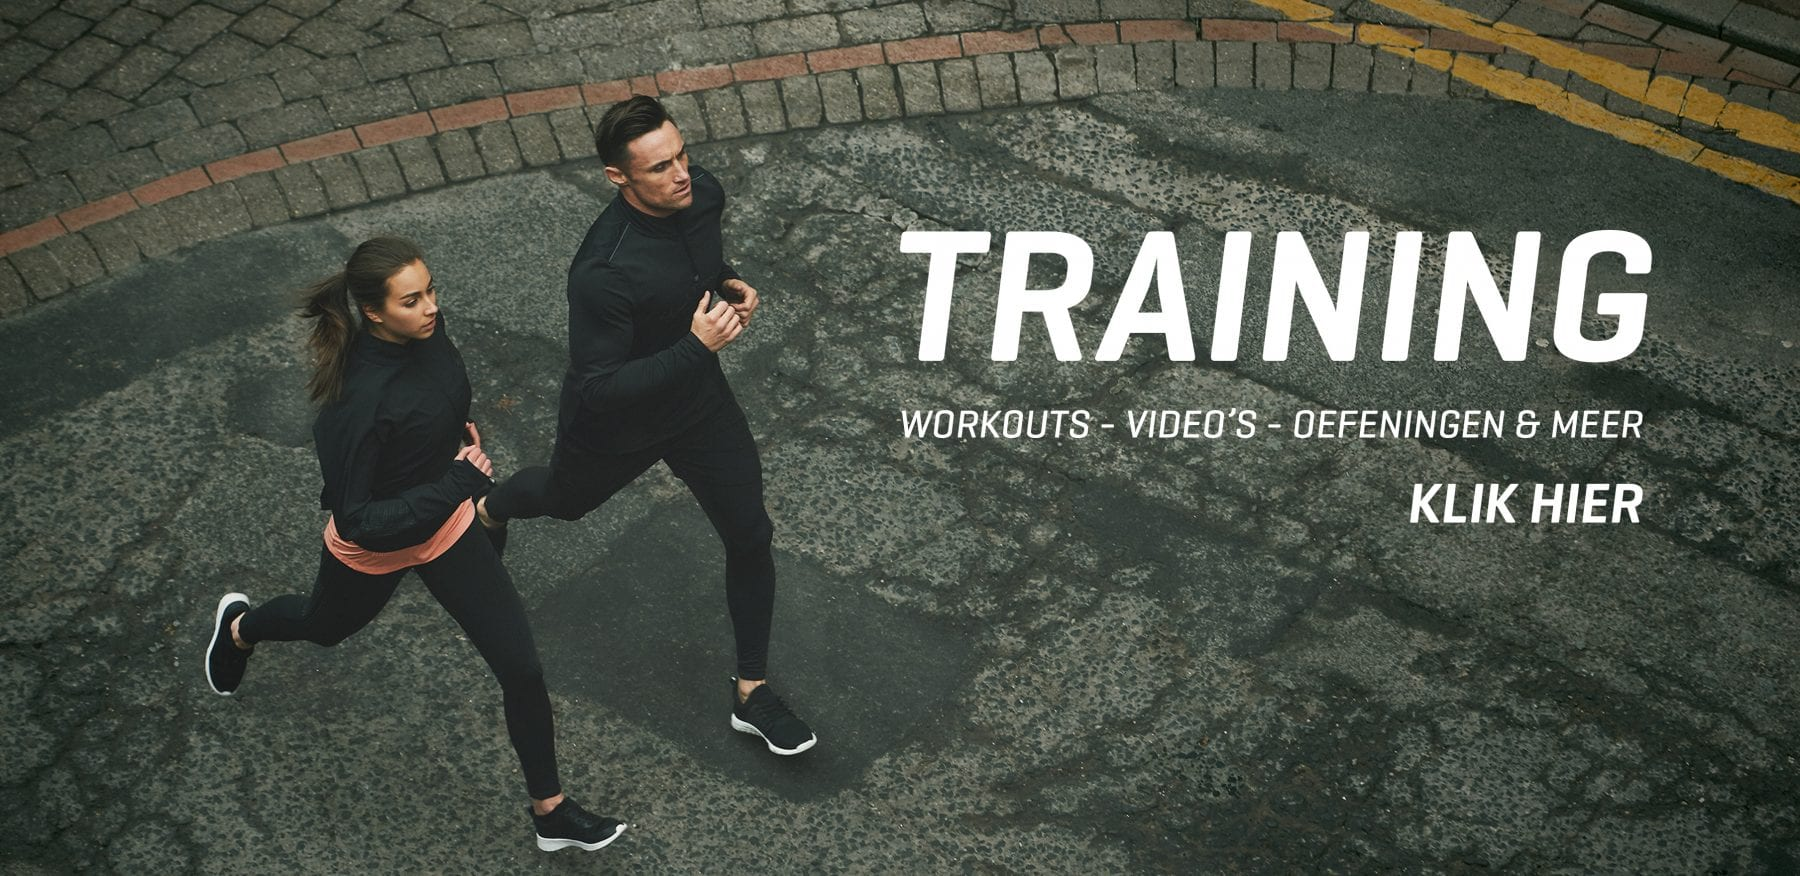 Training artikelen blog workout videos myprotein